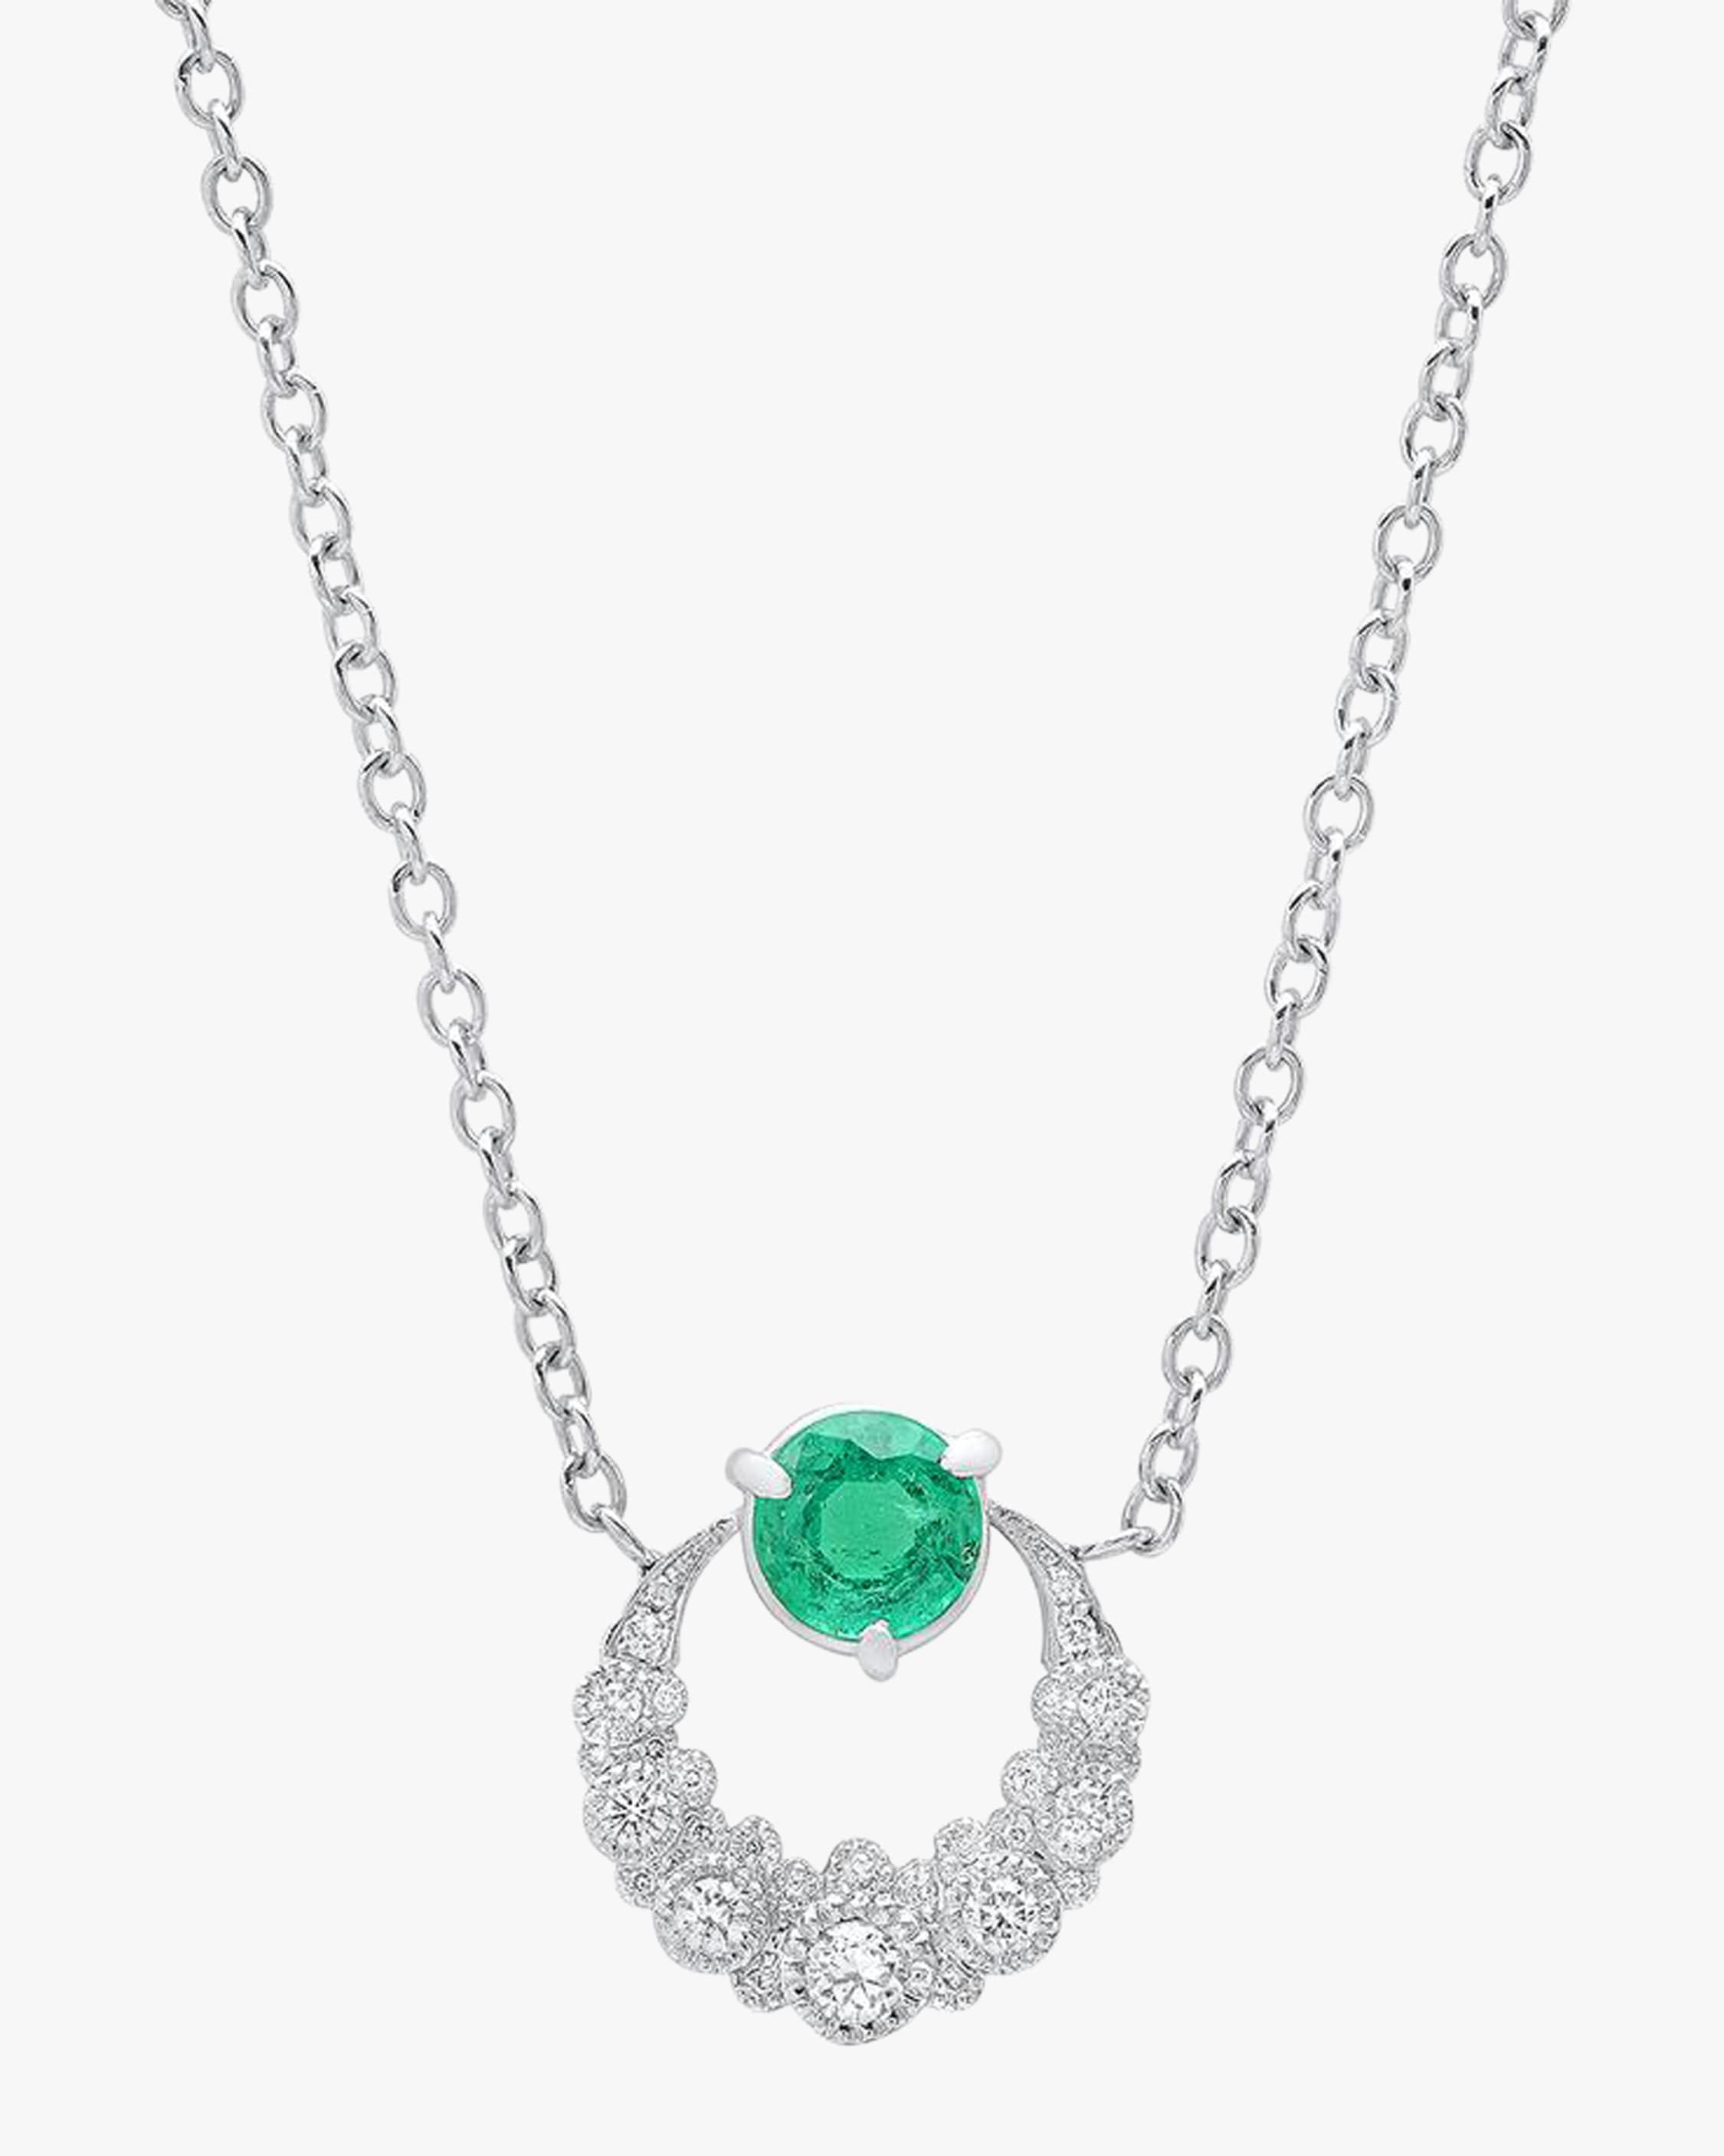 Colette Jewelry Emerald Moon Necklace 2